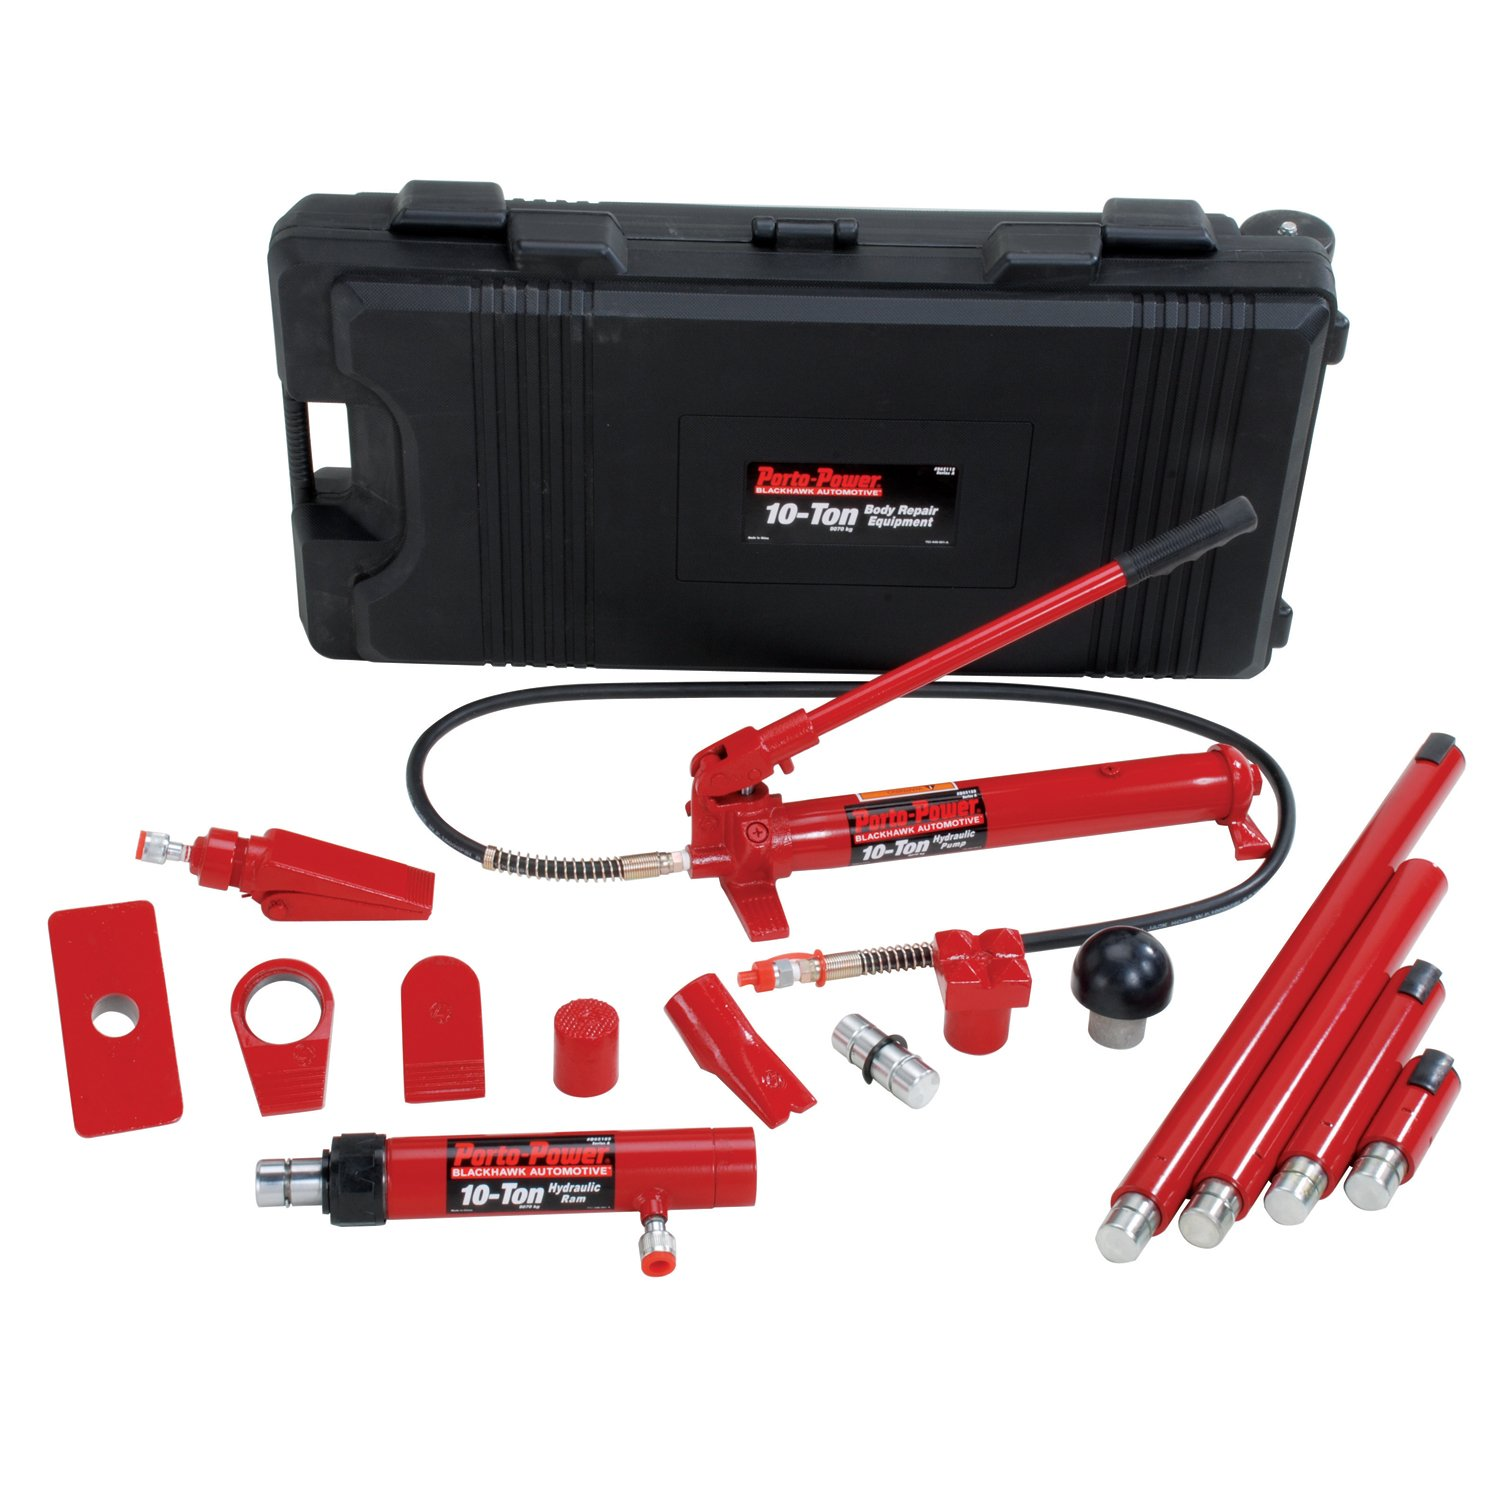 Porto-Power B65115 Black/Red Hydraulic Body Repair 19 Piece Kit - 10 Ton Capacity by Porto-Power (Image #1)